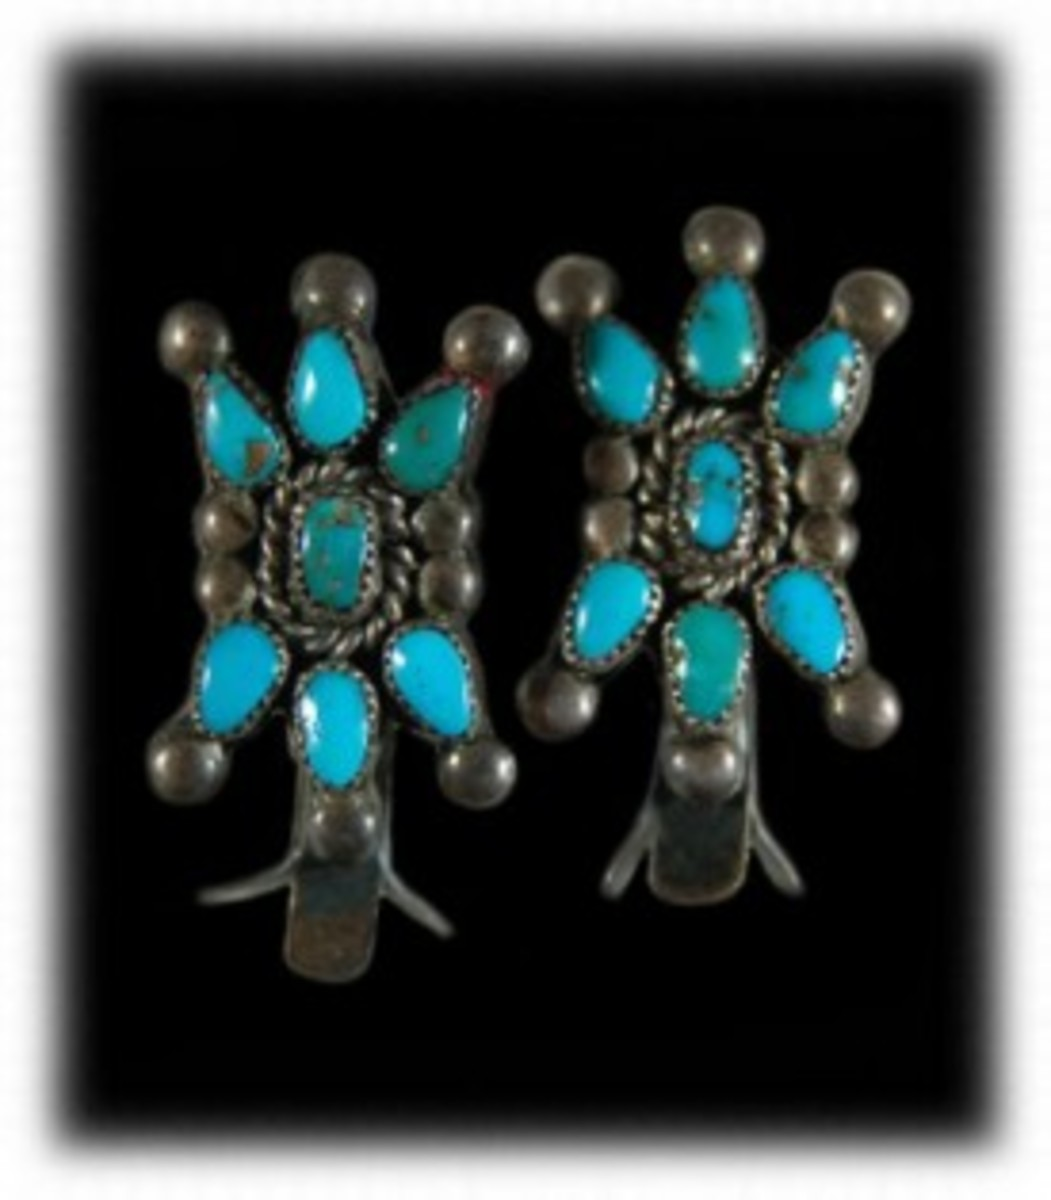 Vintage Navajo cluster earrings made from 1940-1960.  The sky blue turquoise is from Arizona mines.